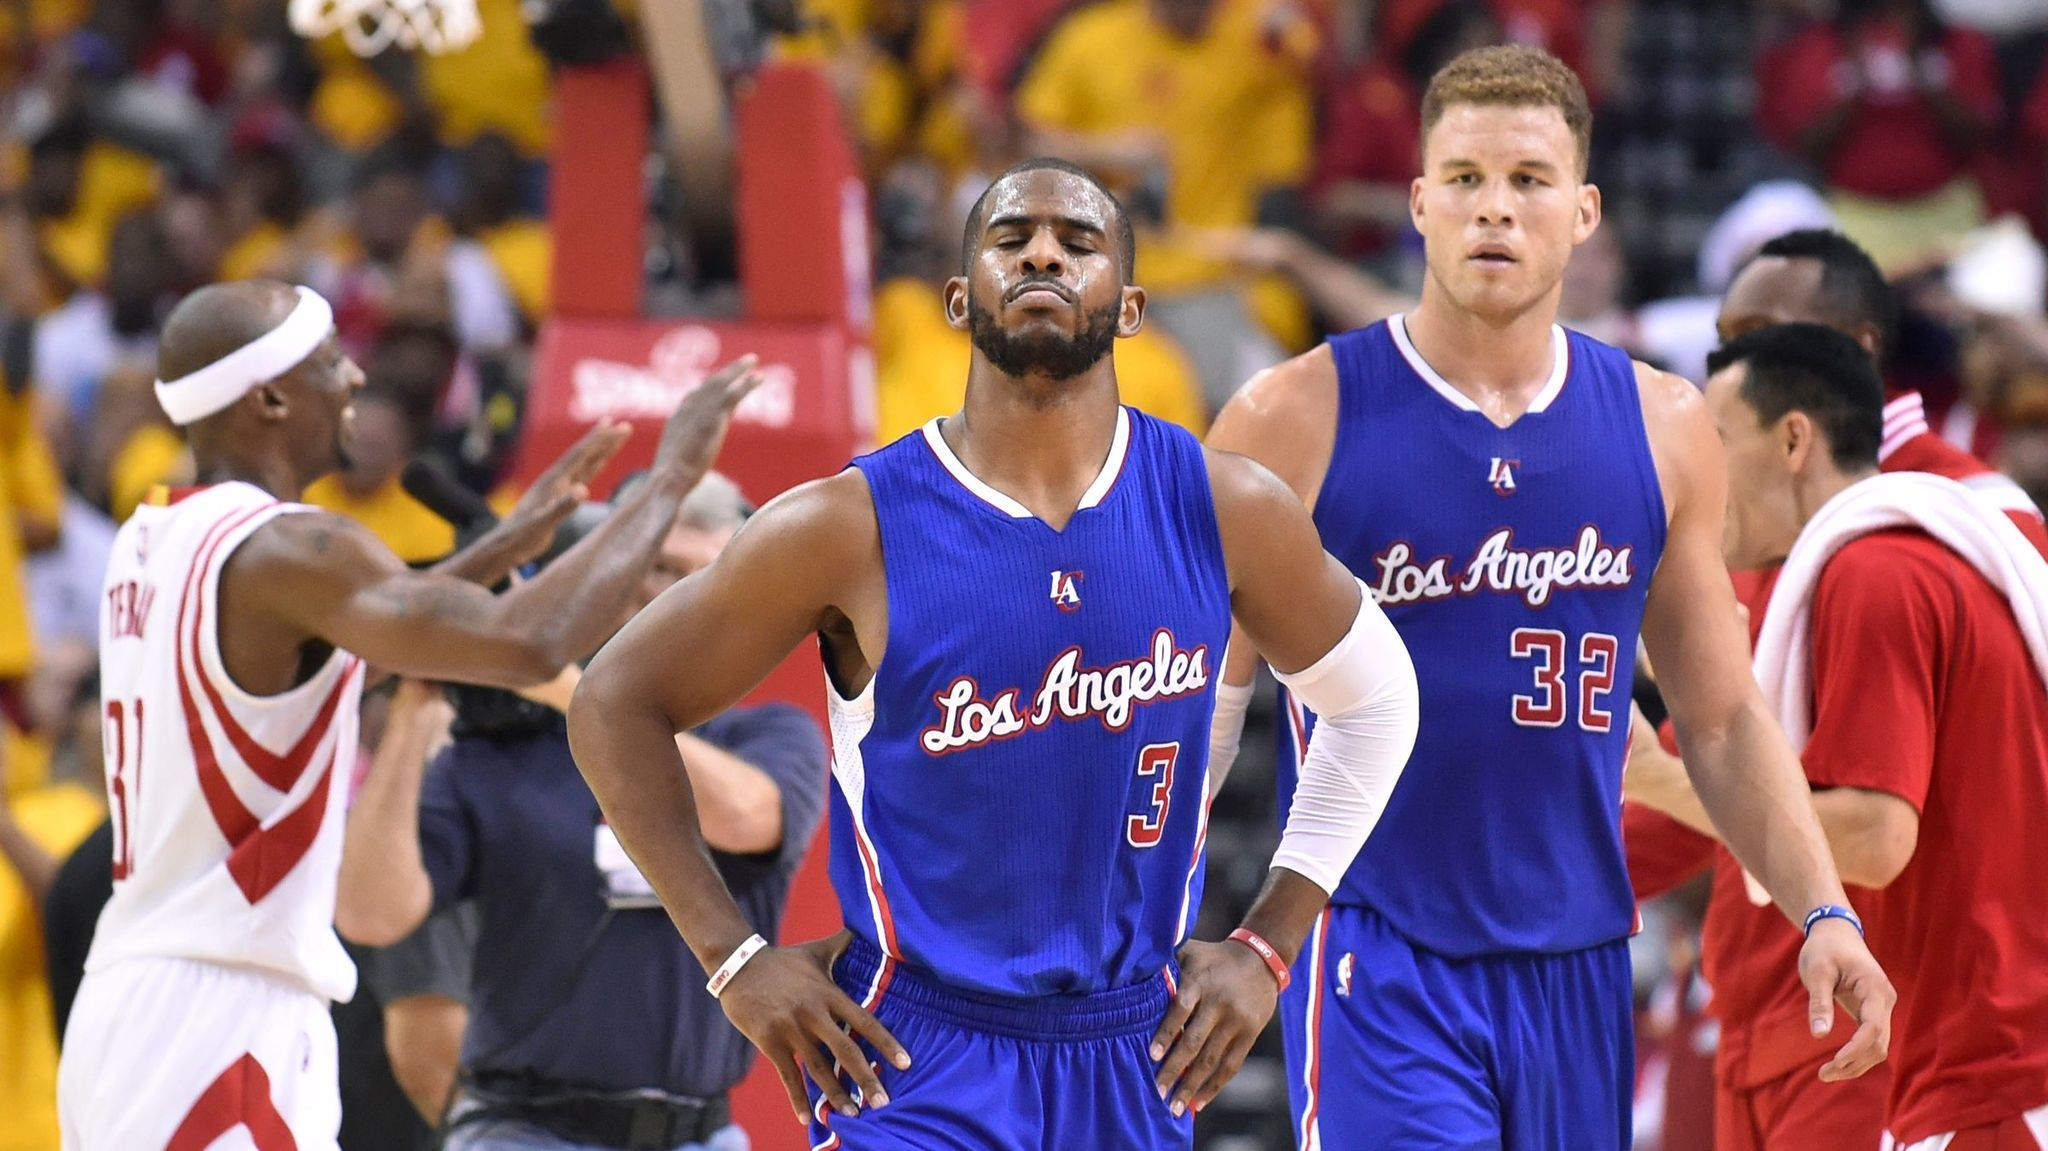 HOUSTON, TEXAS MAY 12, 2015-Clippers Chris Paul, left, and Blake Griffin walk off the court trialing